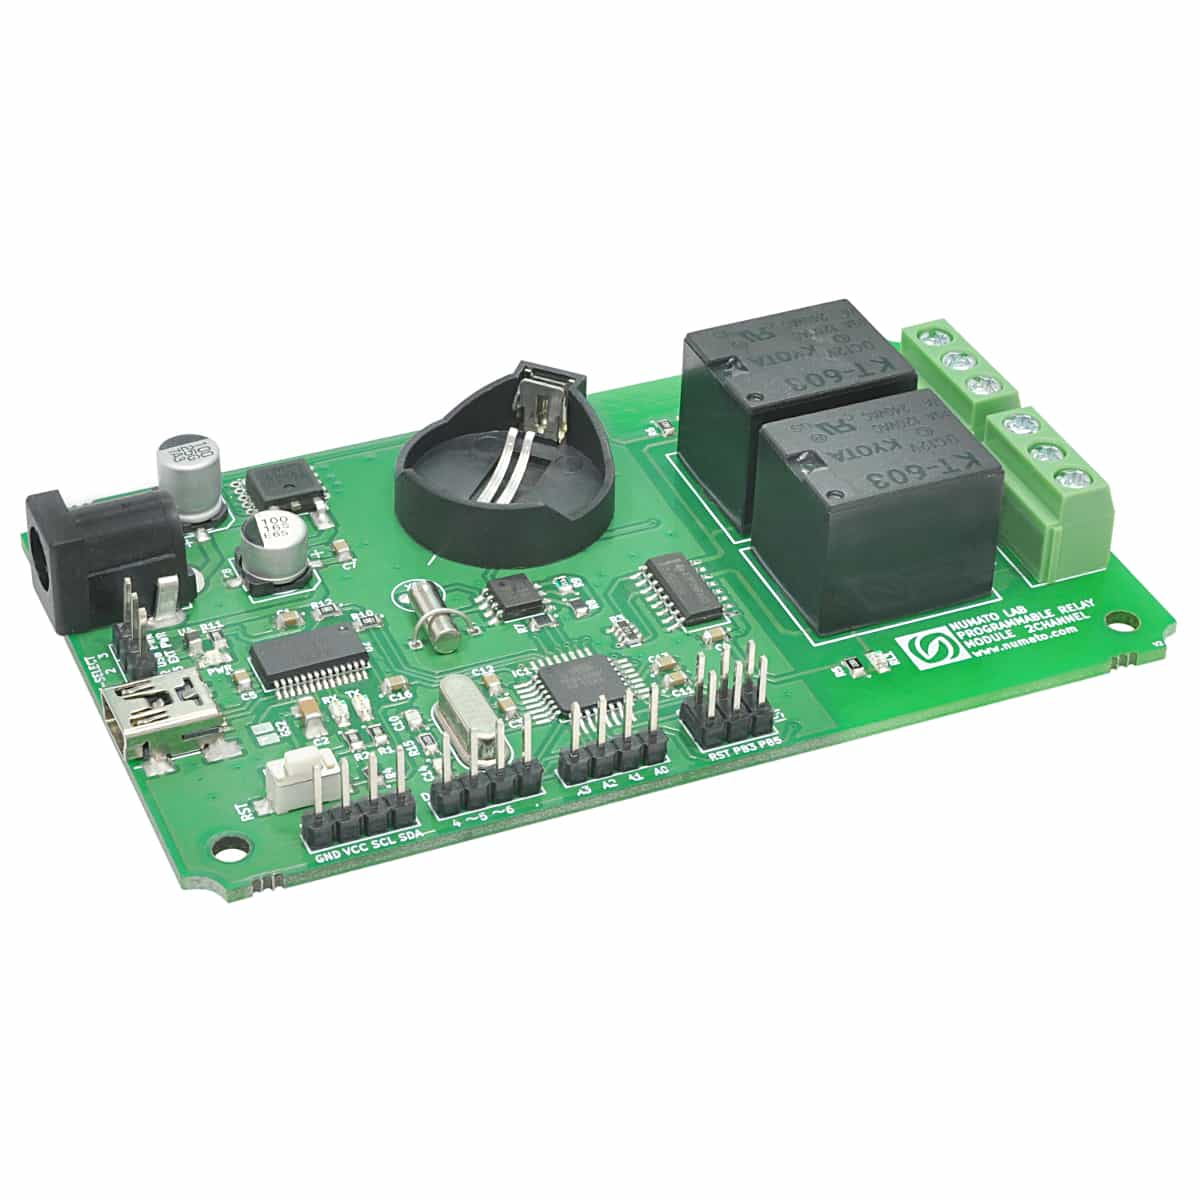 2 Channel Solid State Relay Controller Board Numato Lab The Professional Programmable Module